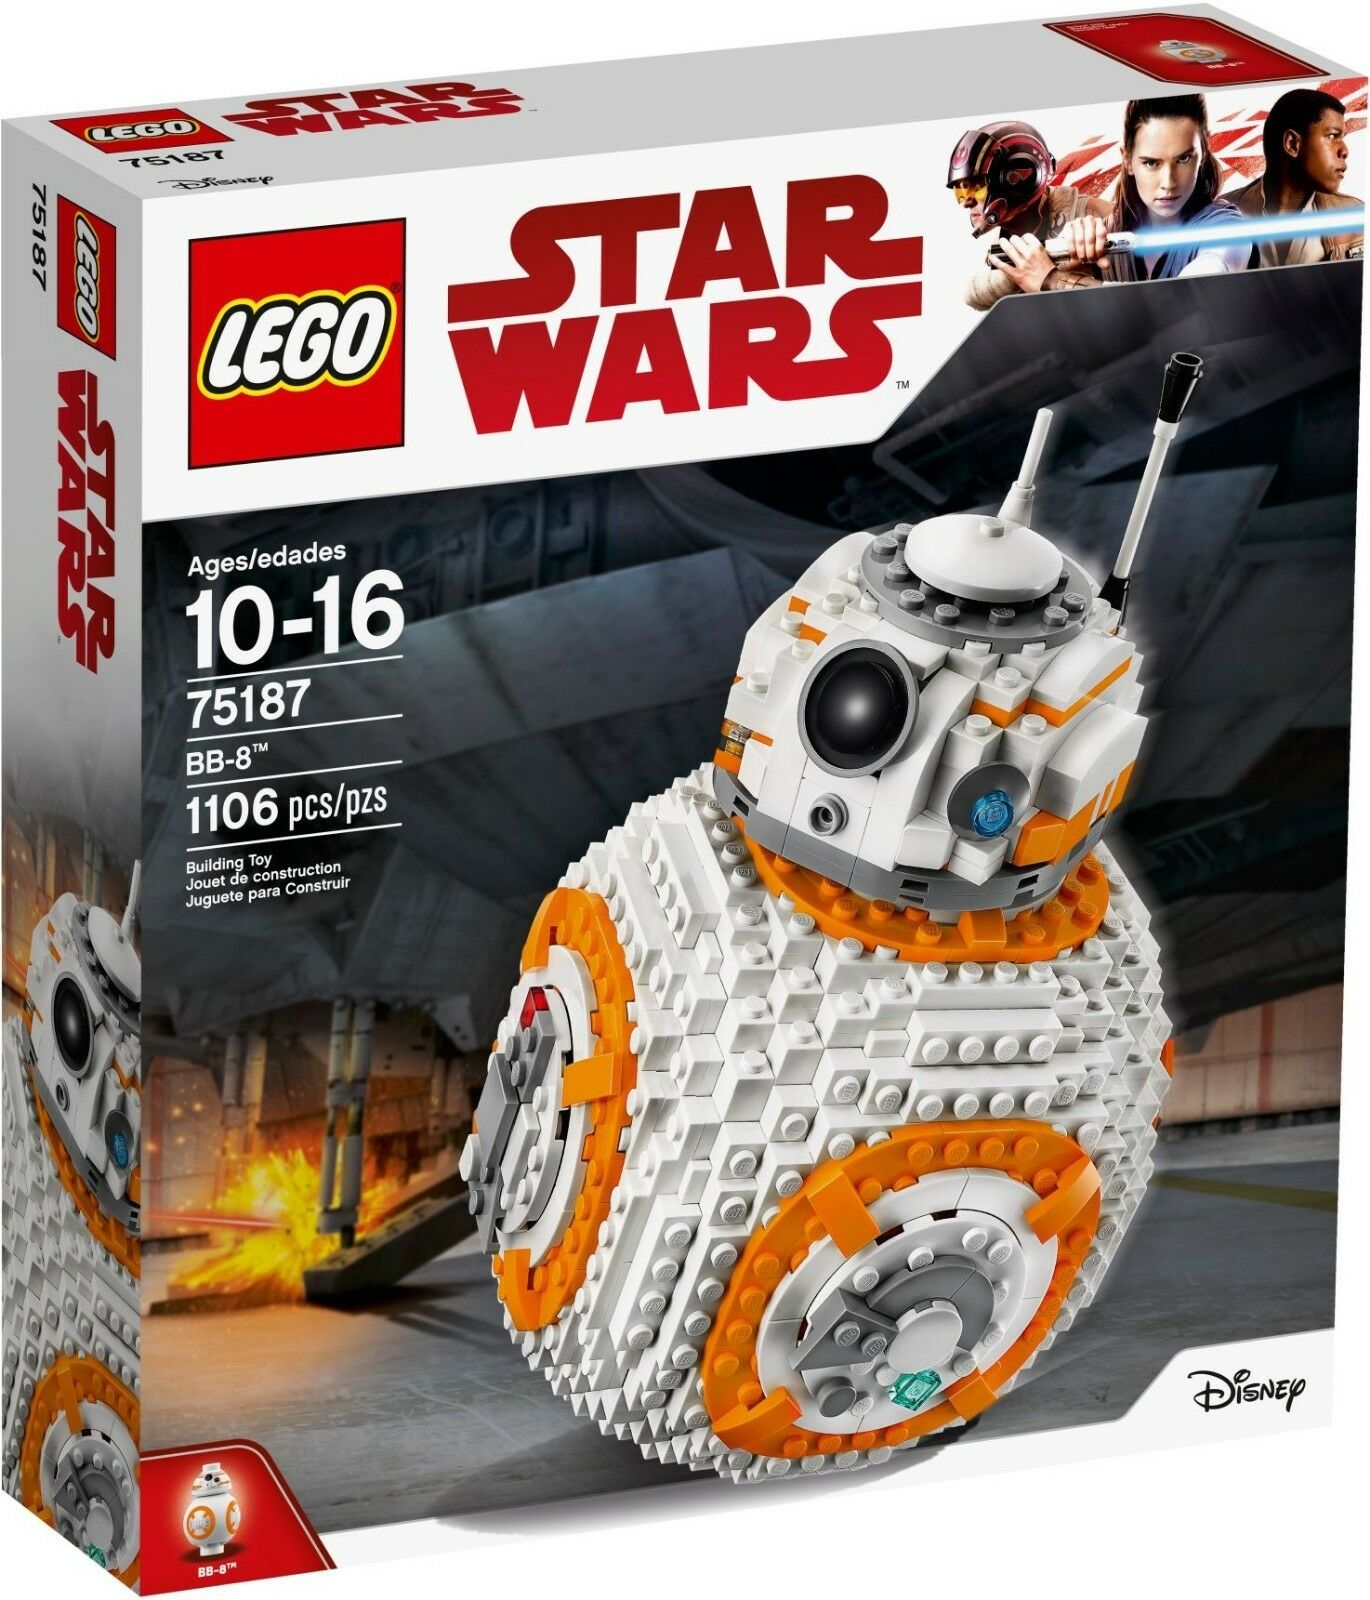 Lego 75187 - Star Wars - BB-8 - Sealed - New 1